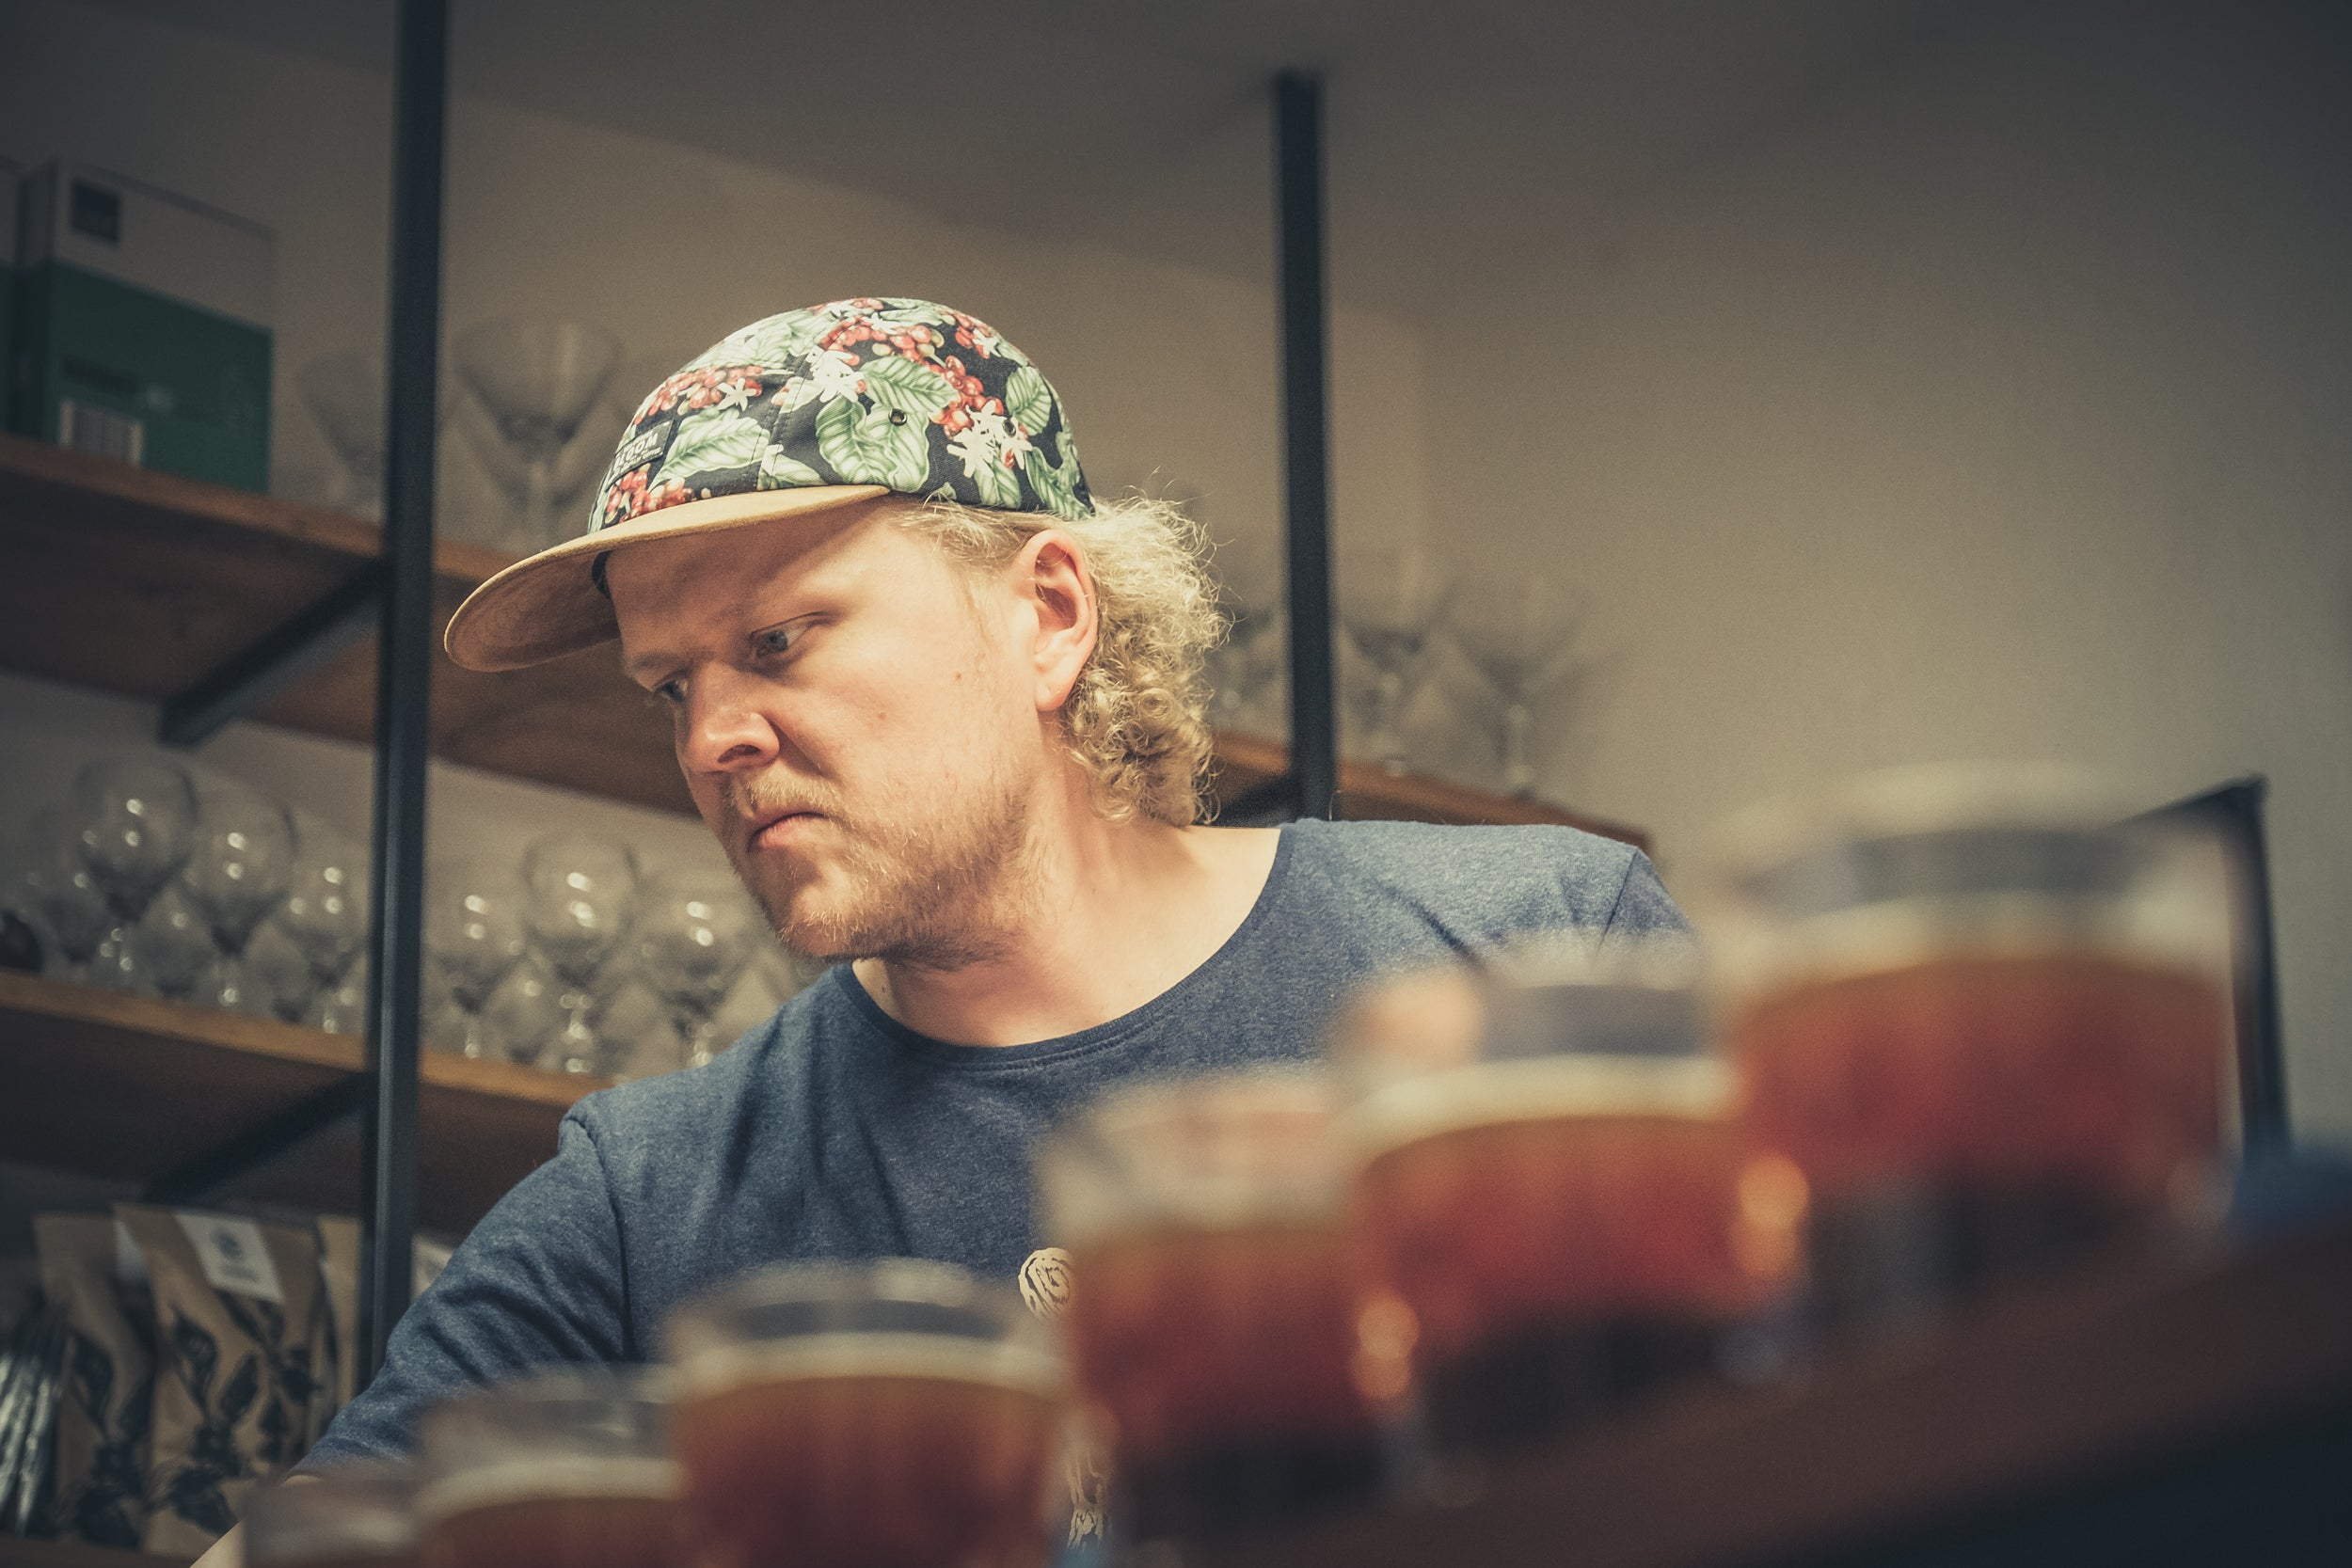 cupping specialty coffee